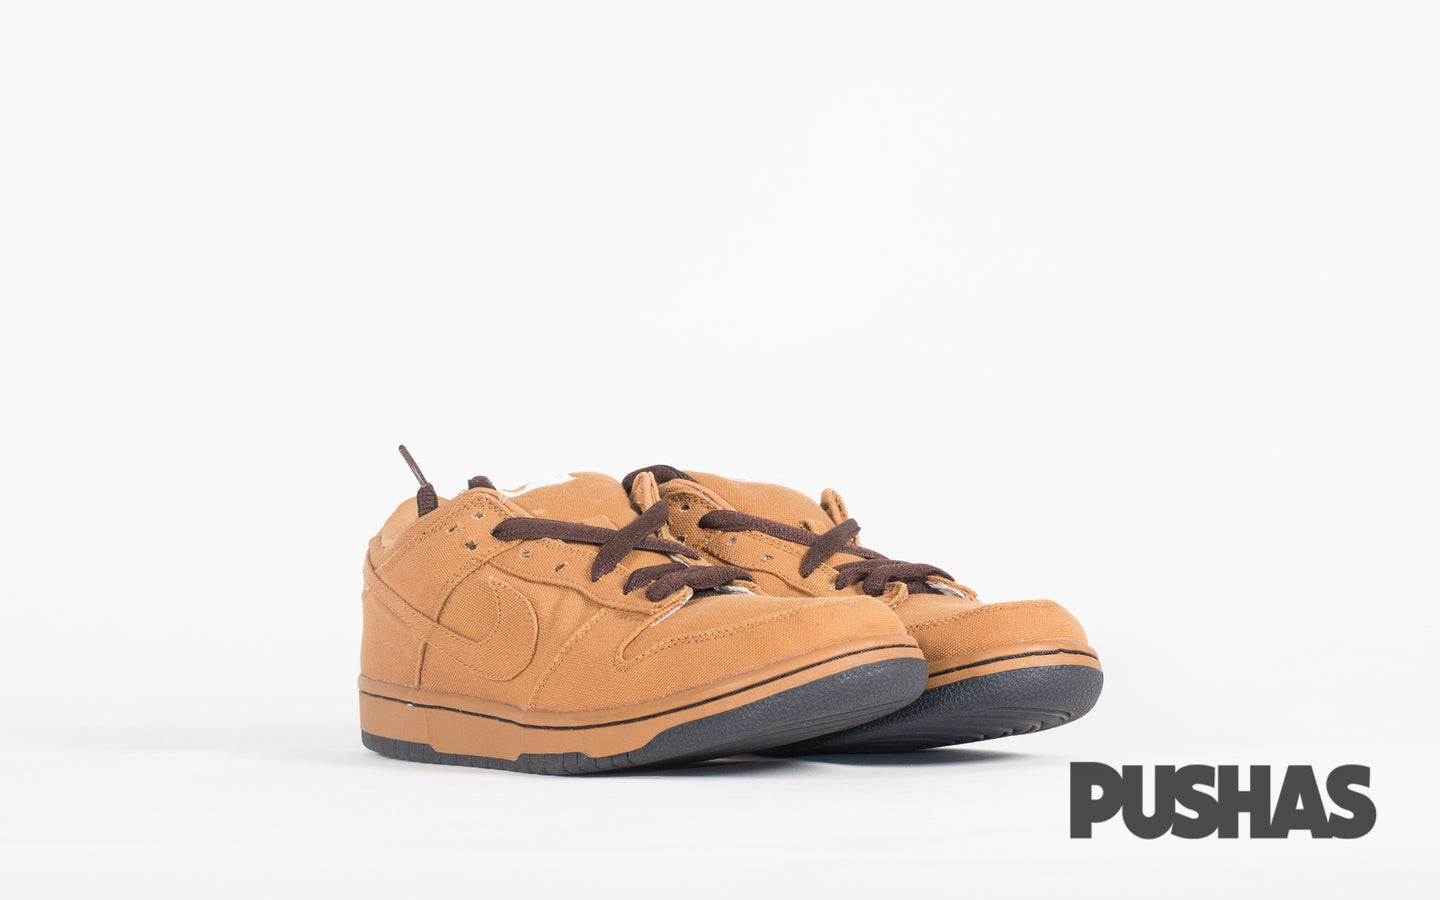 pushas-nike-SB-Dunk-Low-Carhartt-Shale-Brown